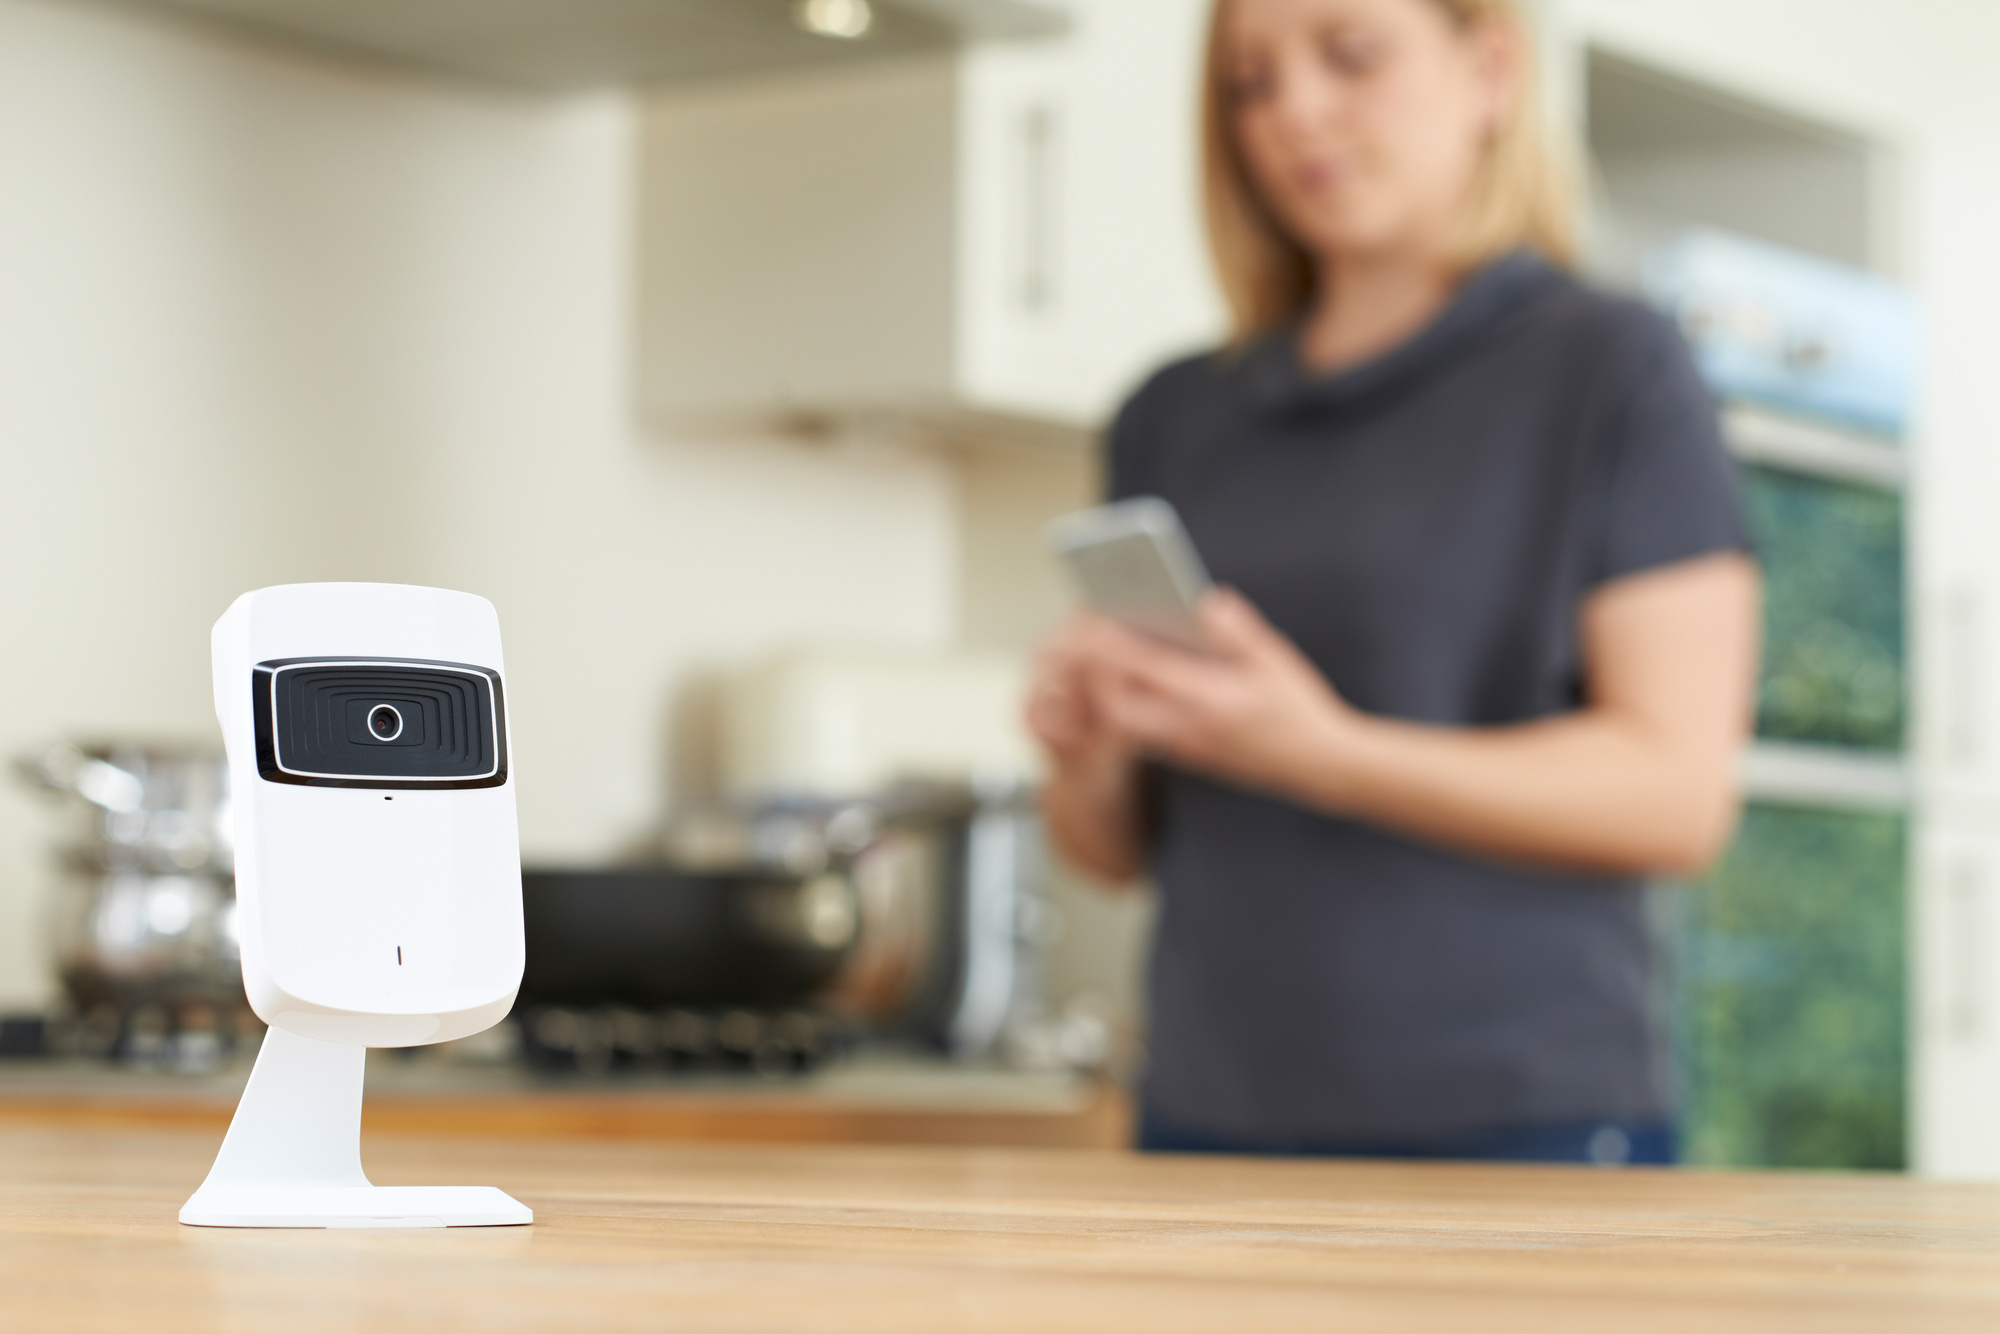 Stay On Top of Your Home Security: The Best Security Camera Apps for 2018